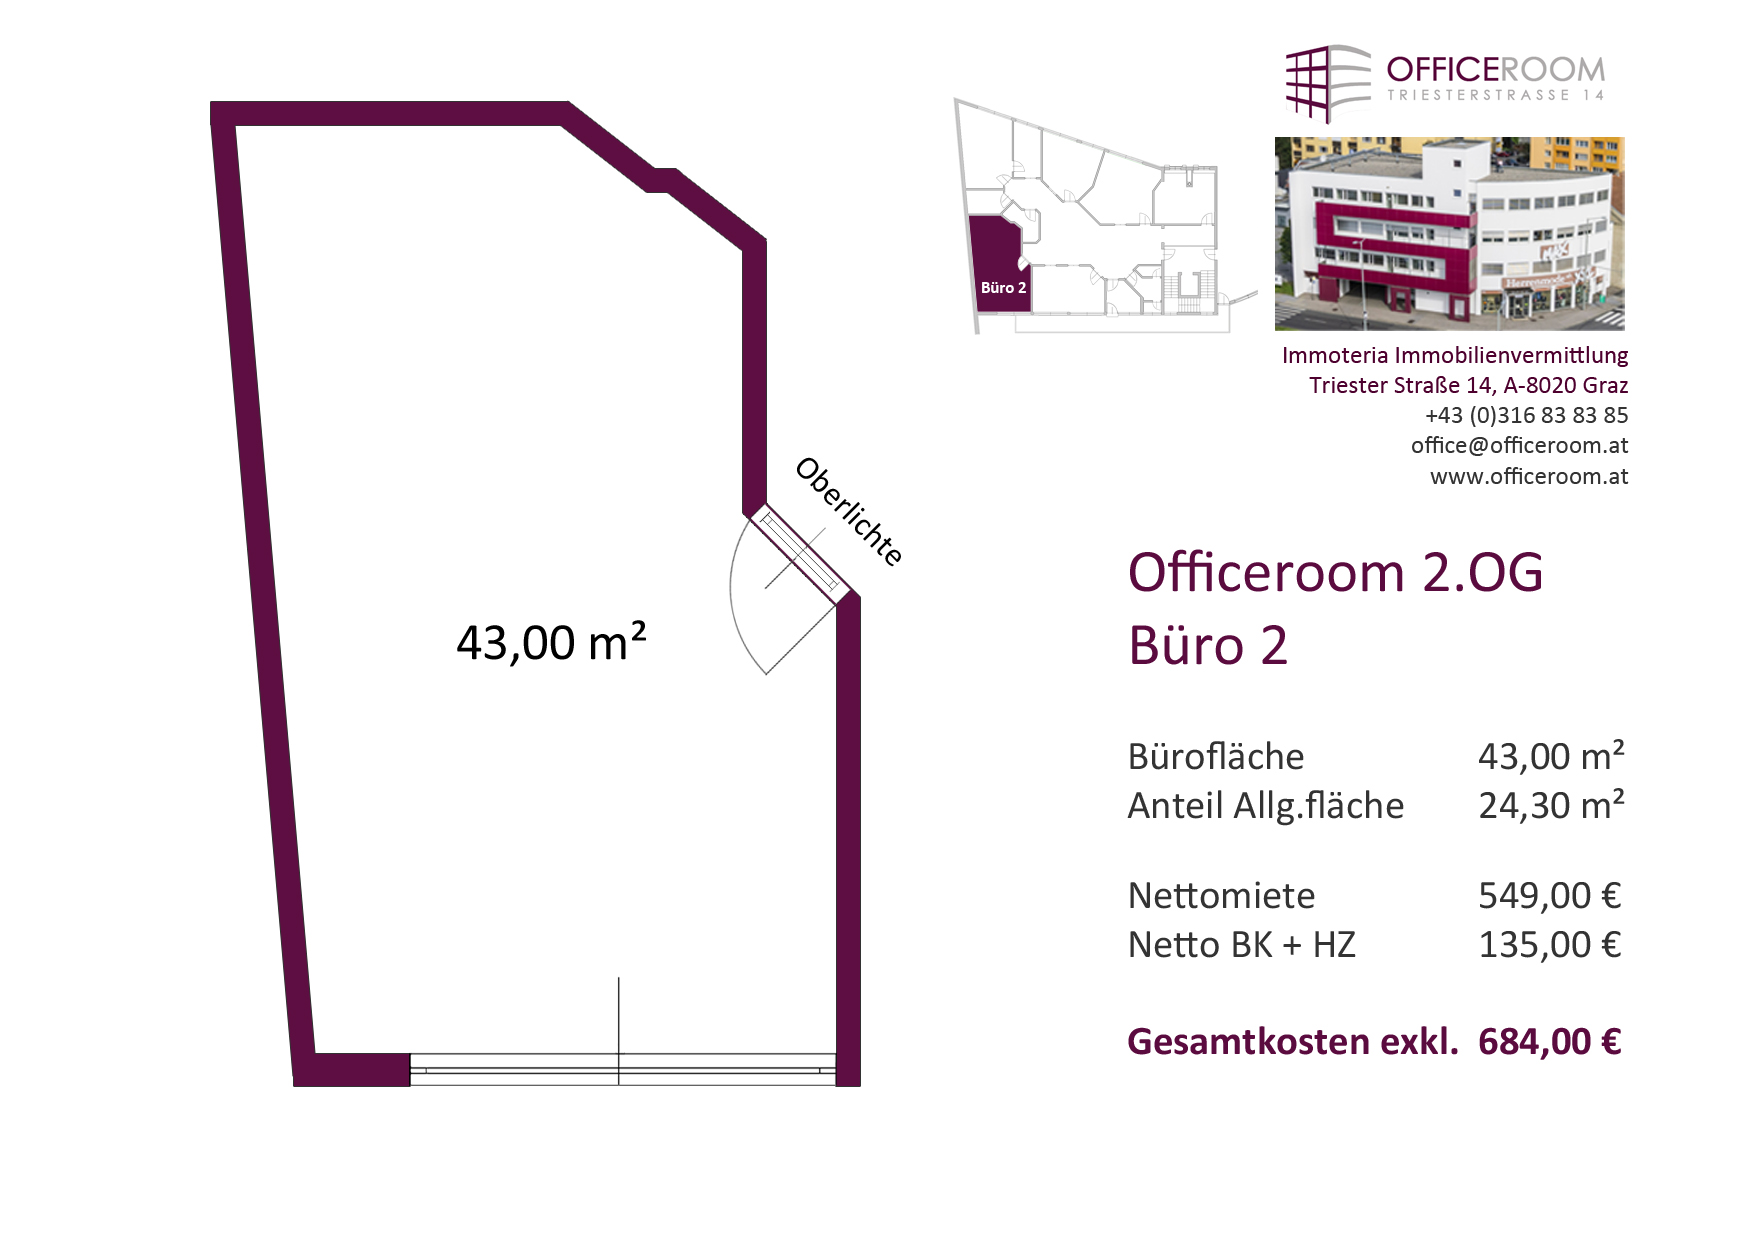 Officeroom Bürocenter, 2. OG, Büro 2, 43,00 m²